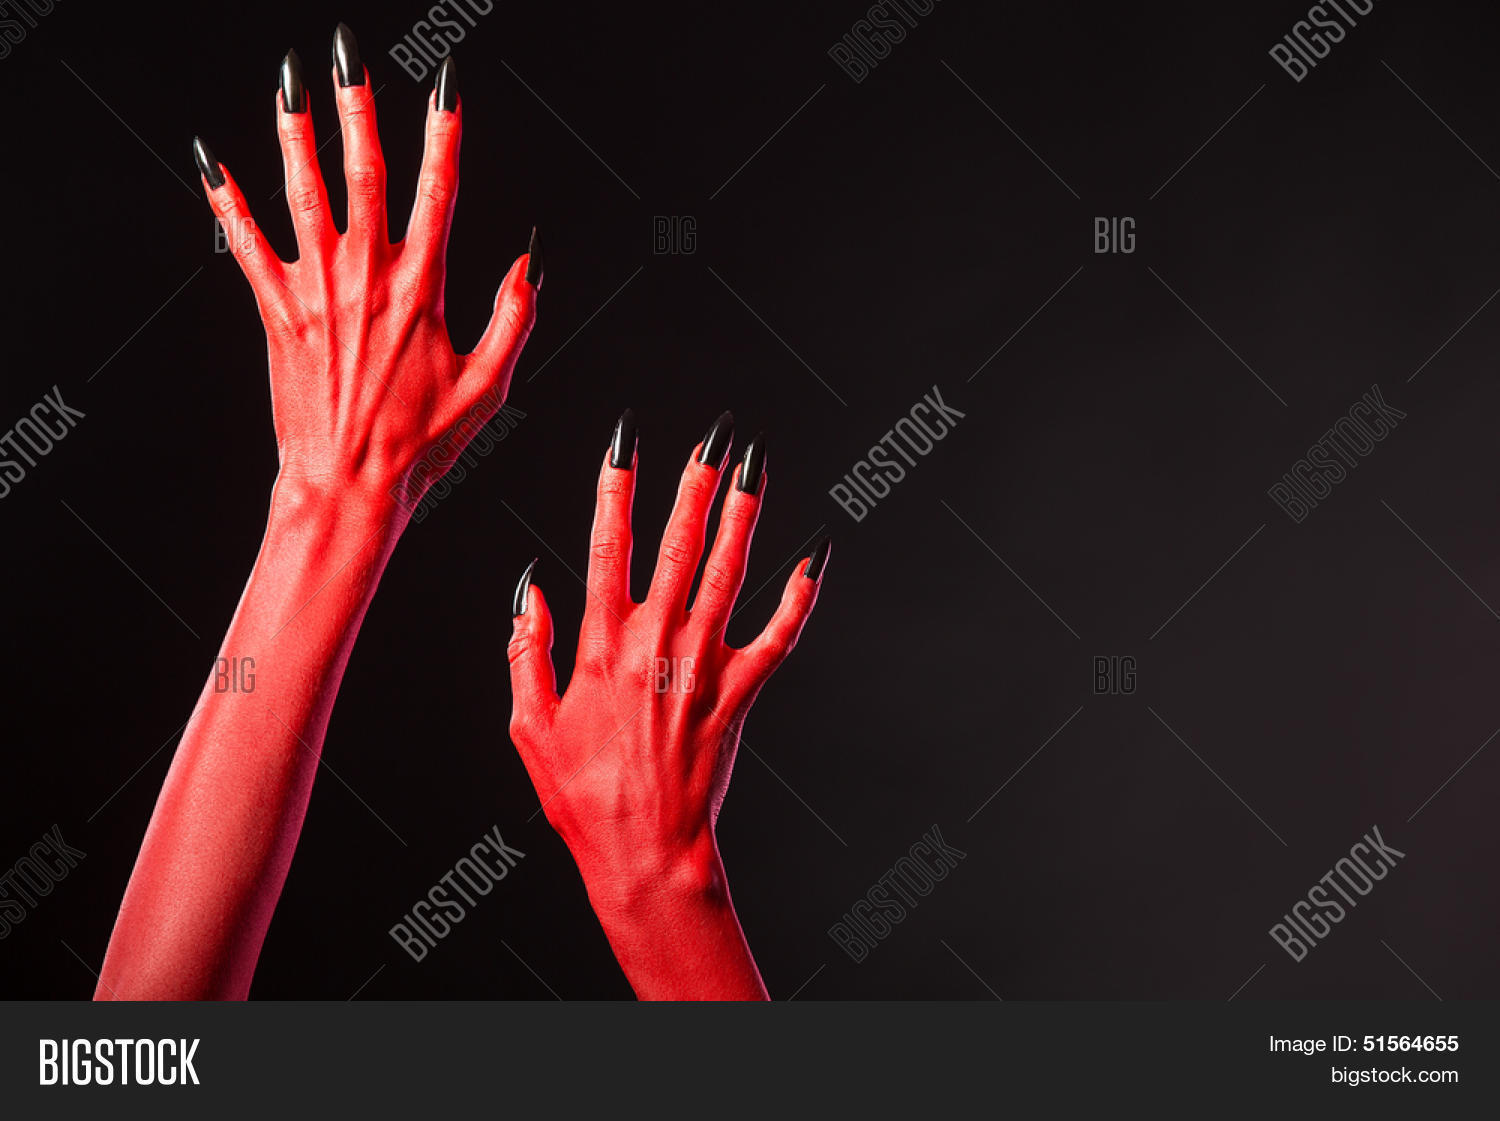 red devil hands black image photo free trial bigstock